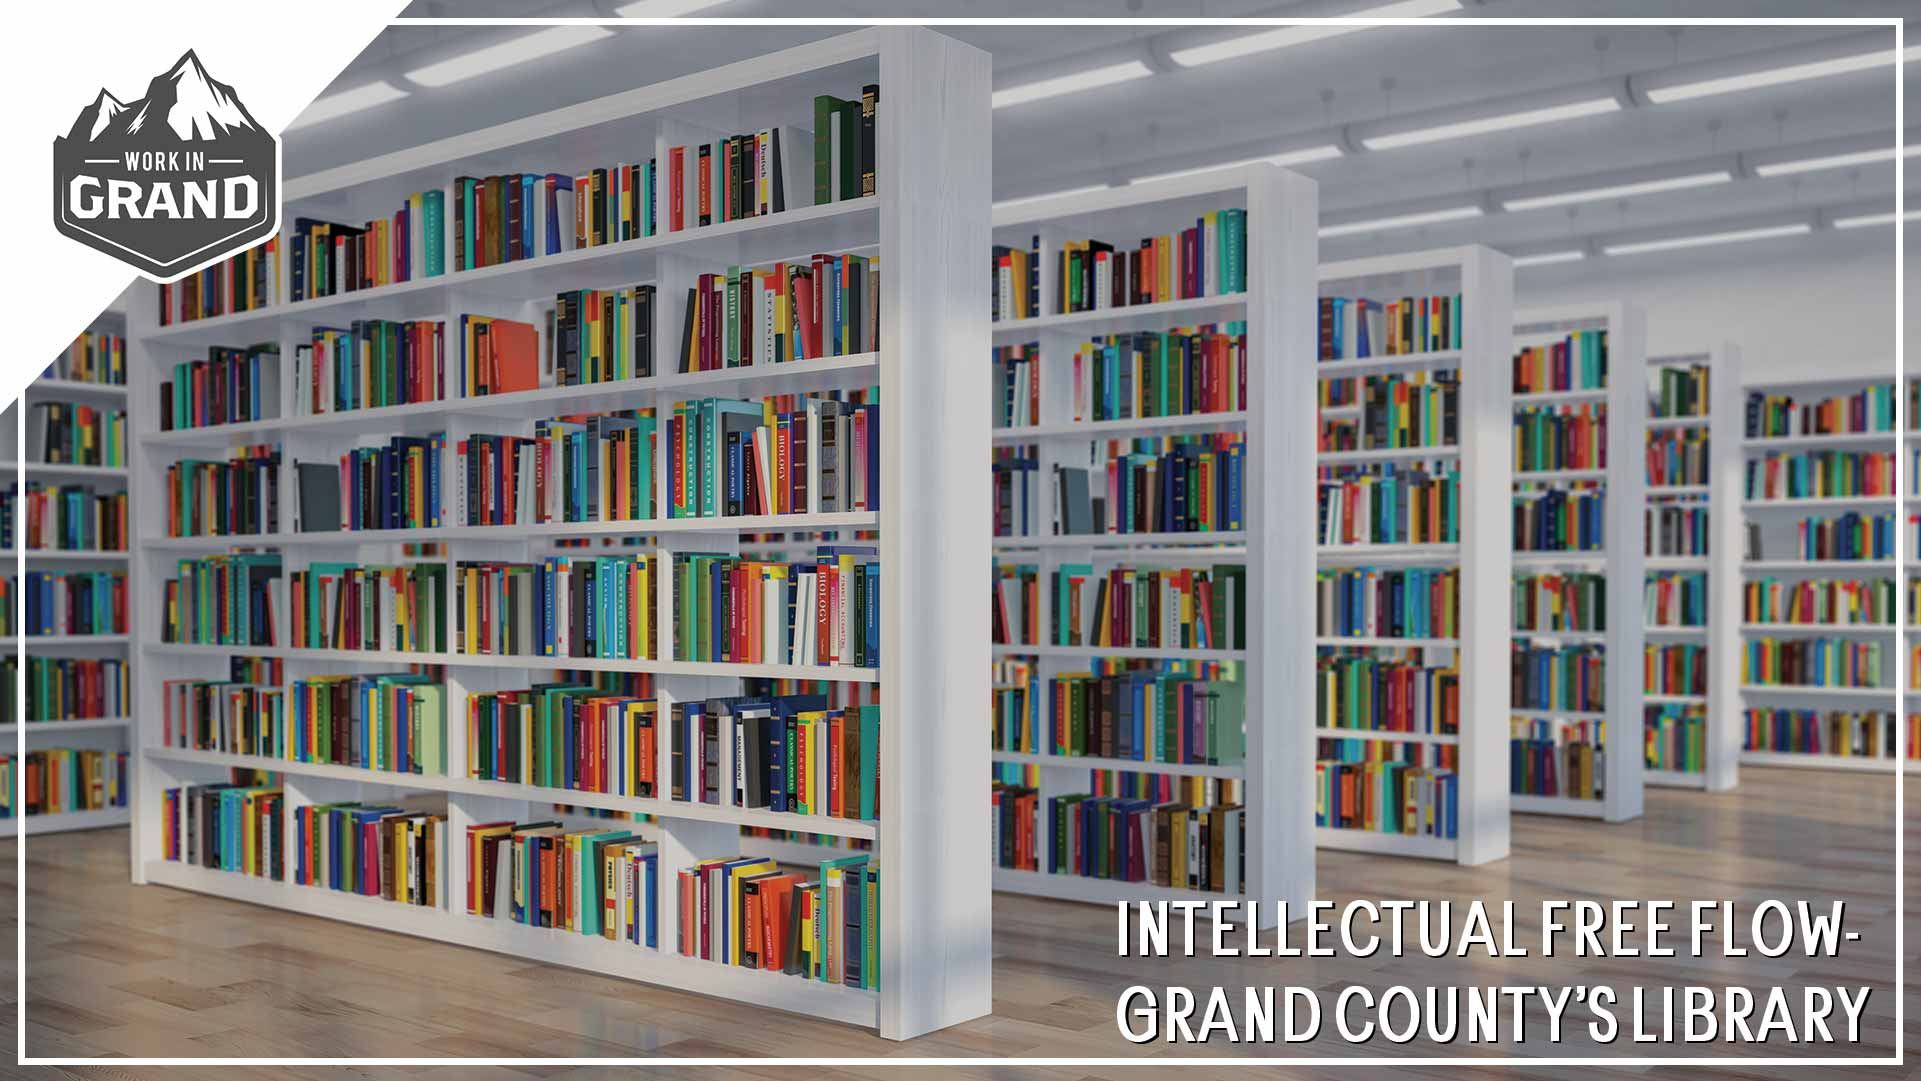 Intellectual Free Flow- Grand County's library